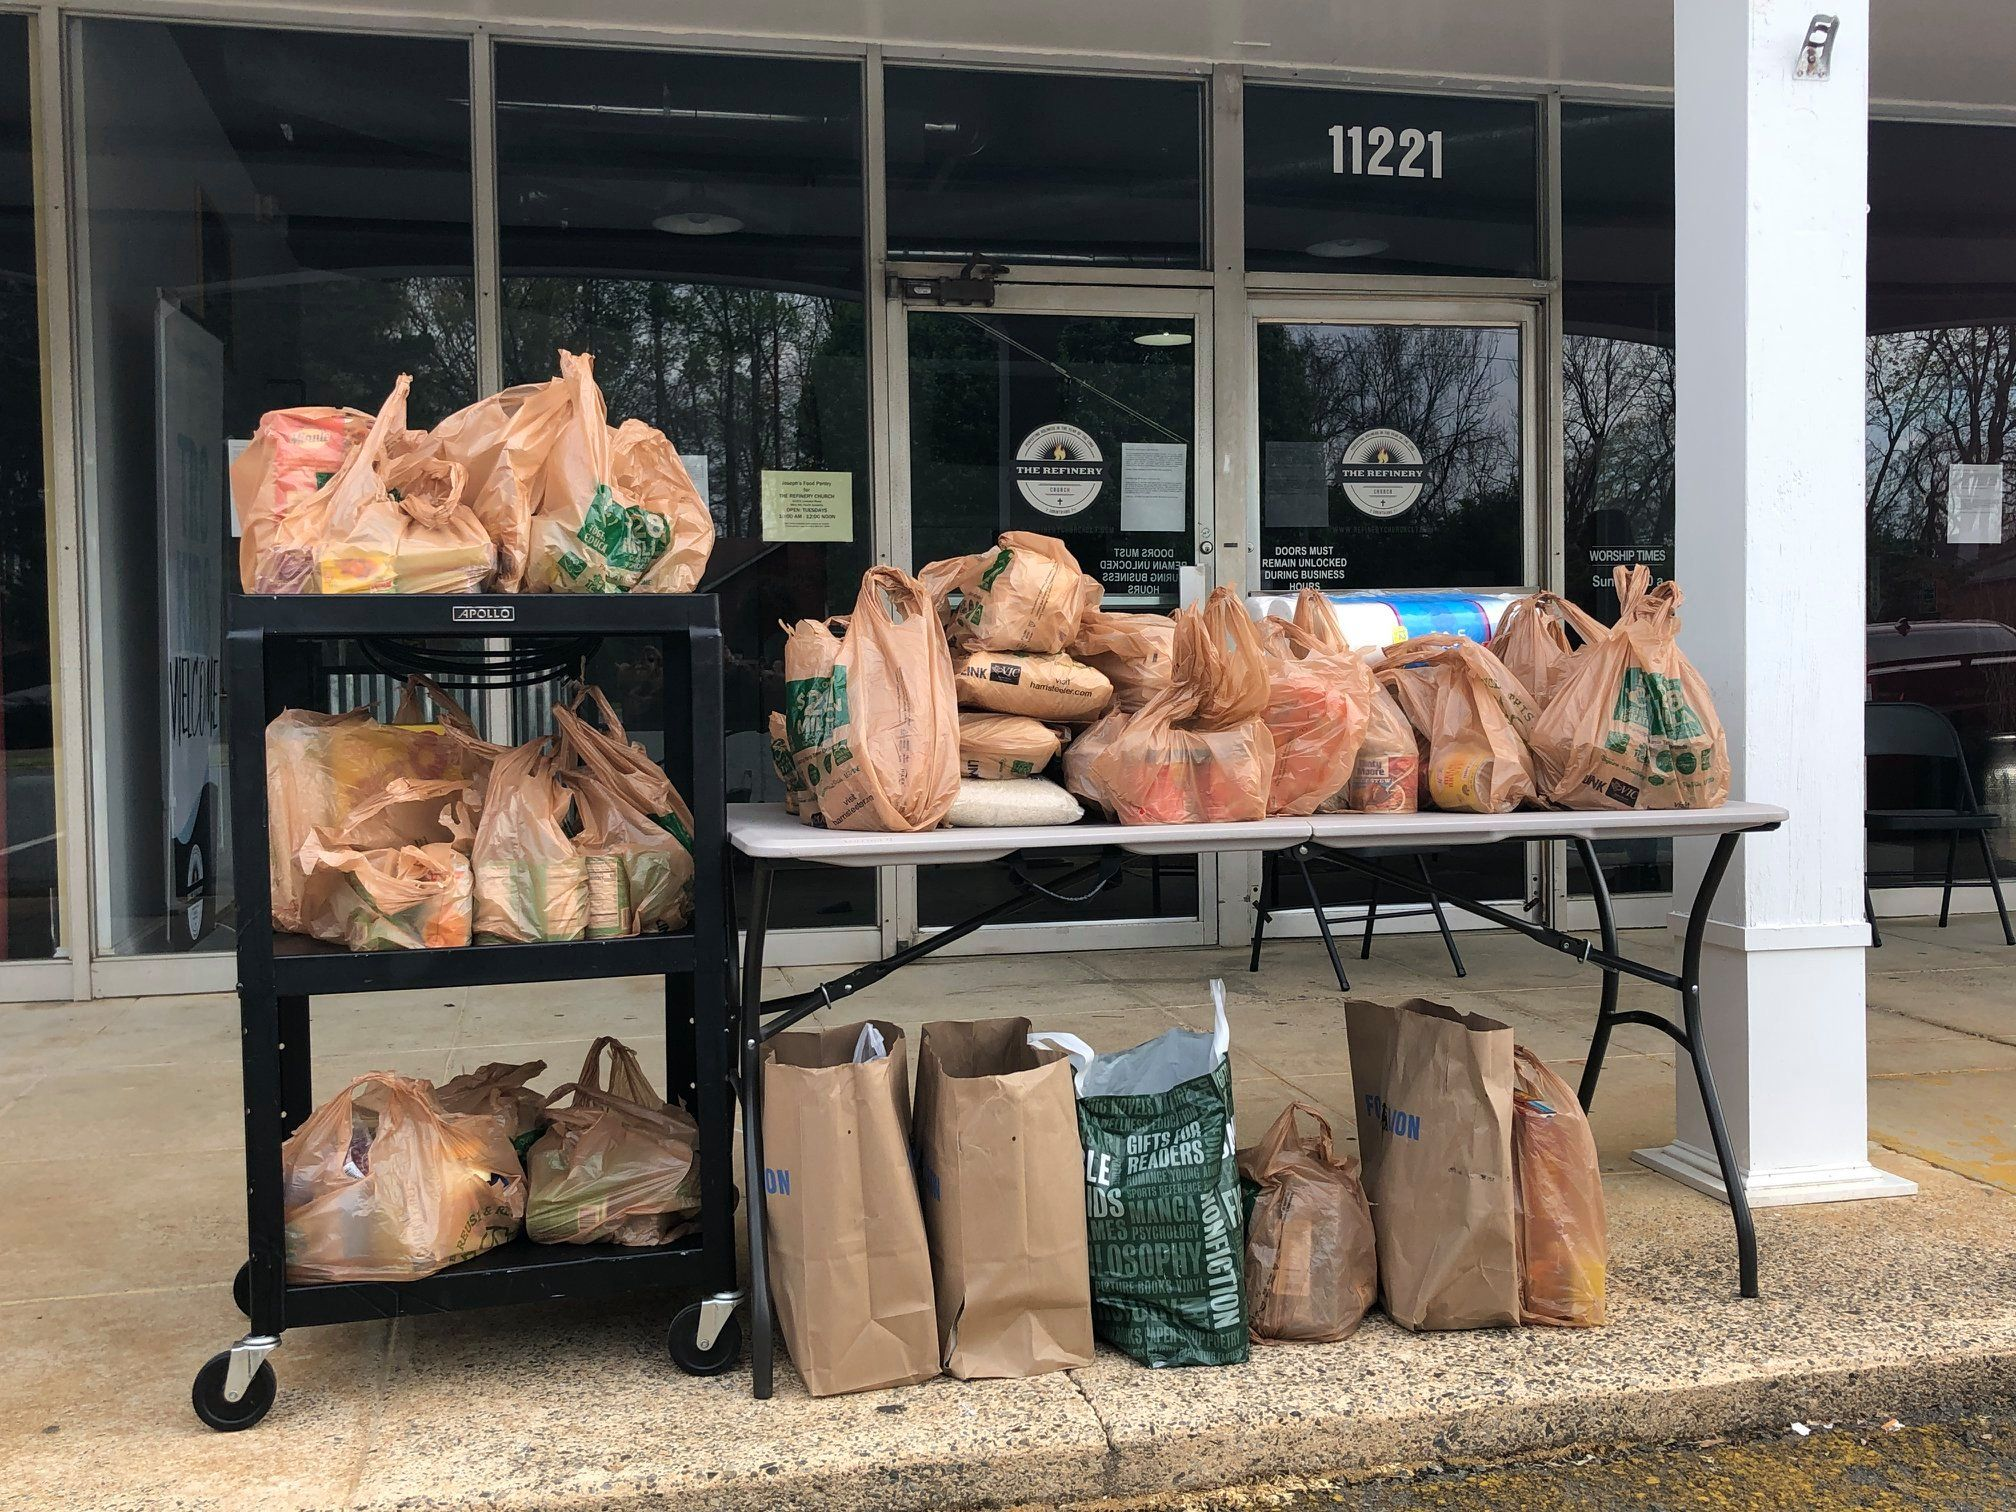 Joseph's Food Pantry at the Refinery Church